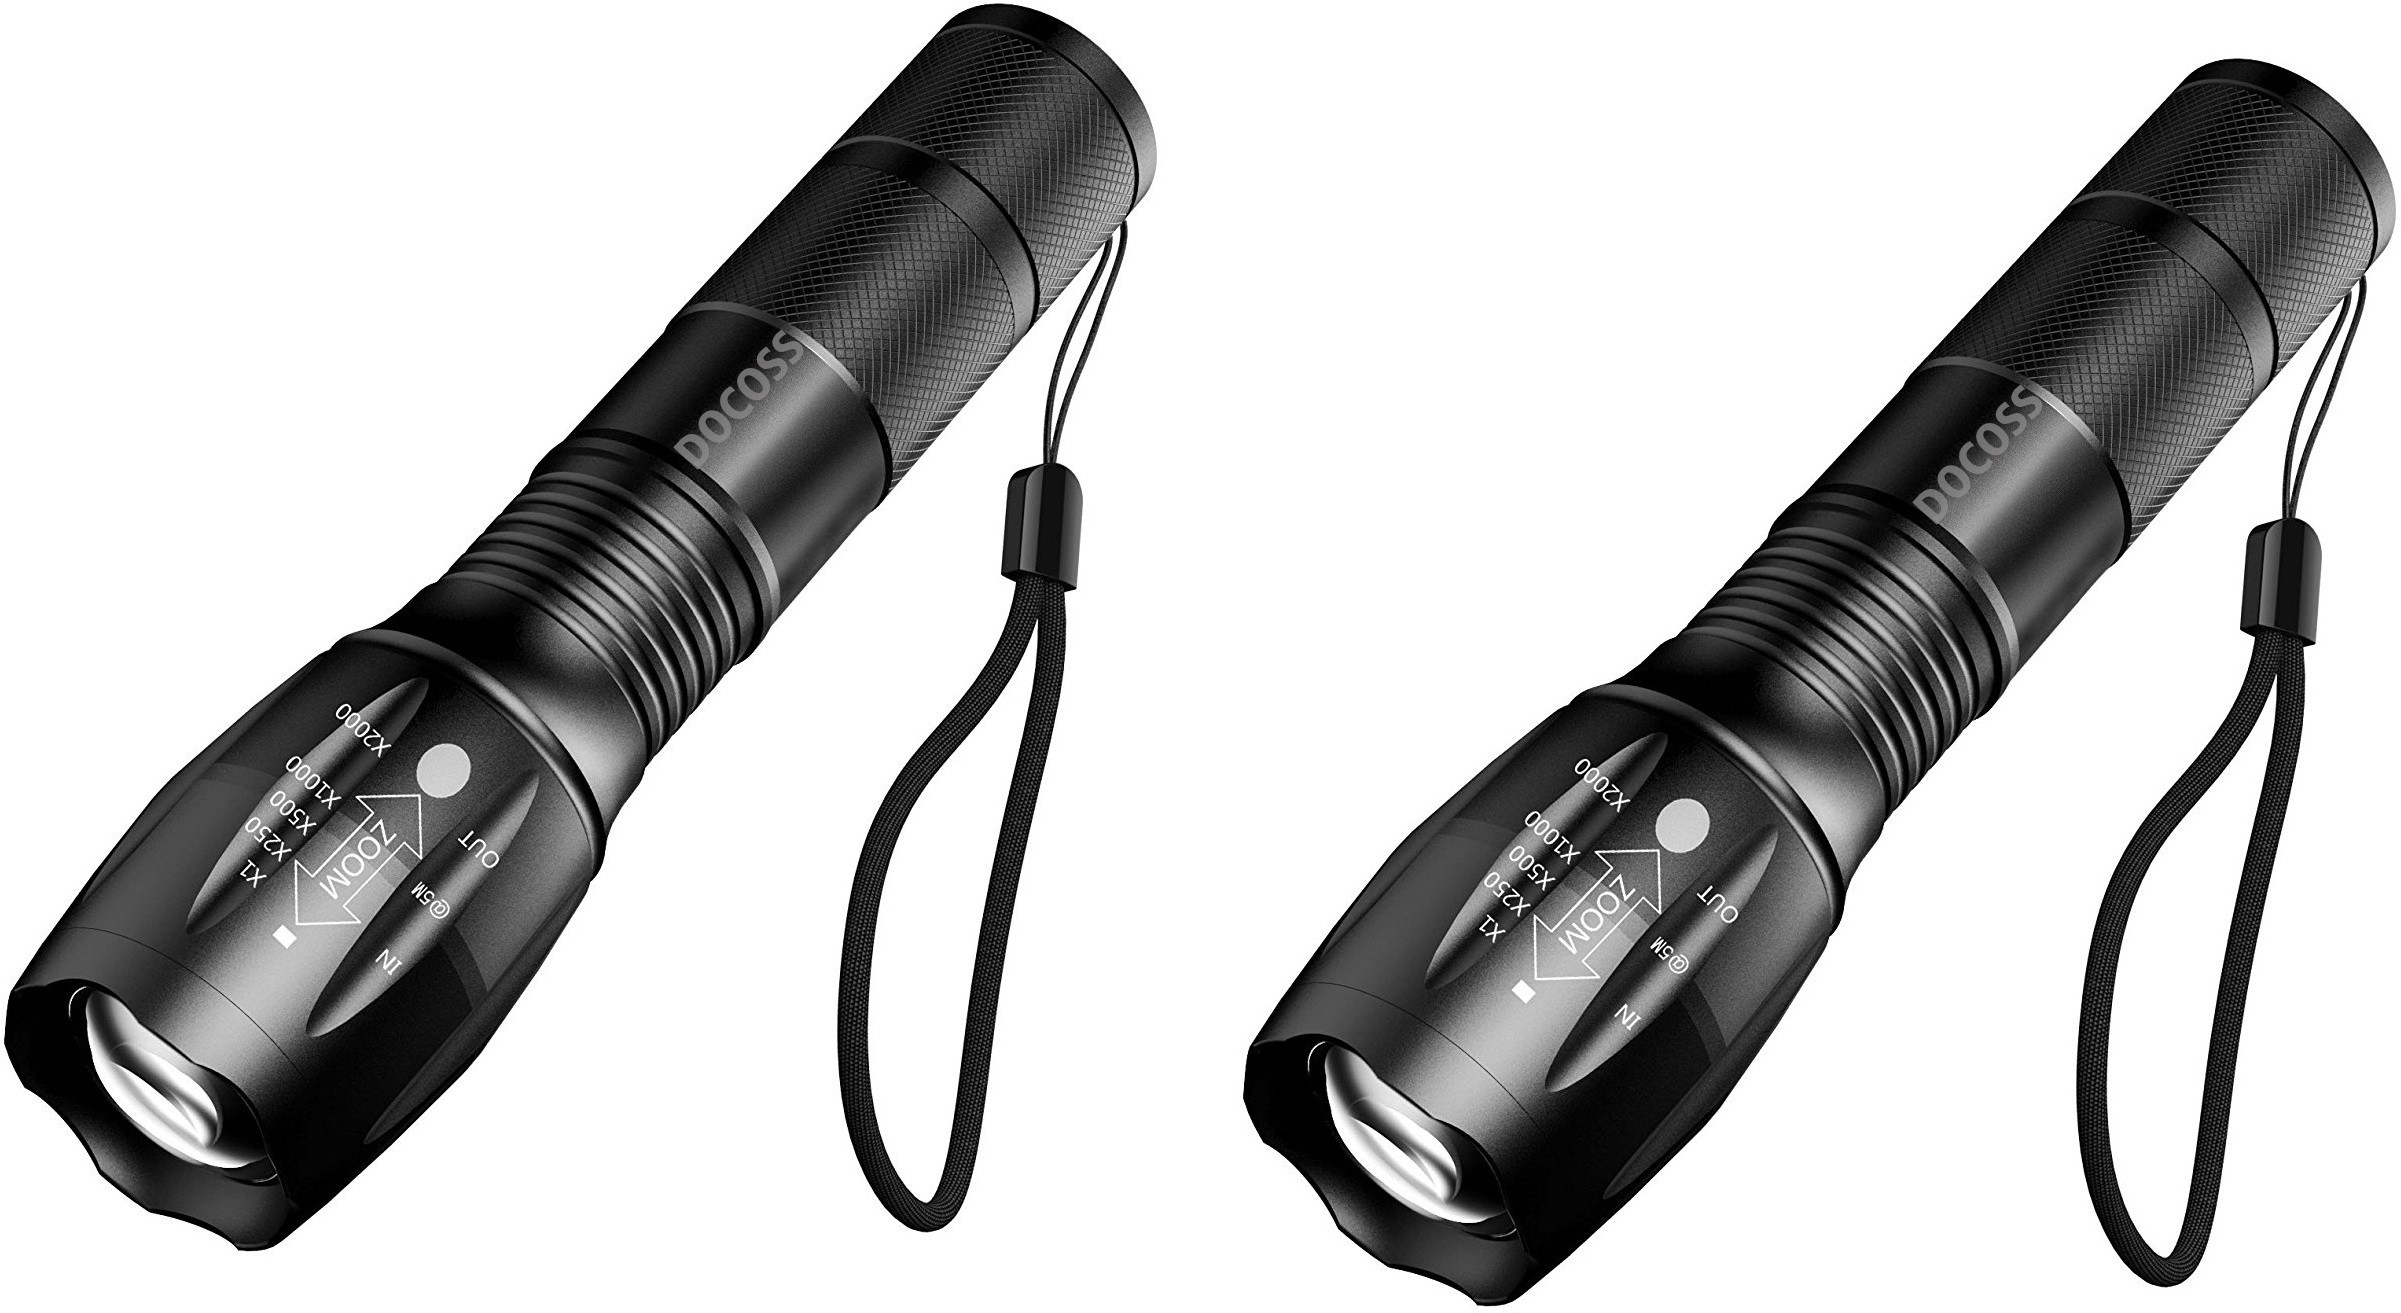 View DOCOSS 5 Modes Portable Bright Waterproof Zoomable Focus Flashlight Torch -A13 Emergency Lights(Black) Home Appliances Price Online(DOCOSS)